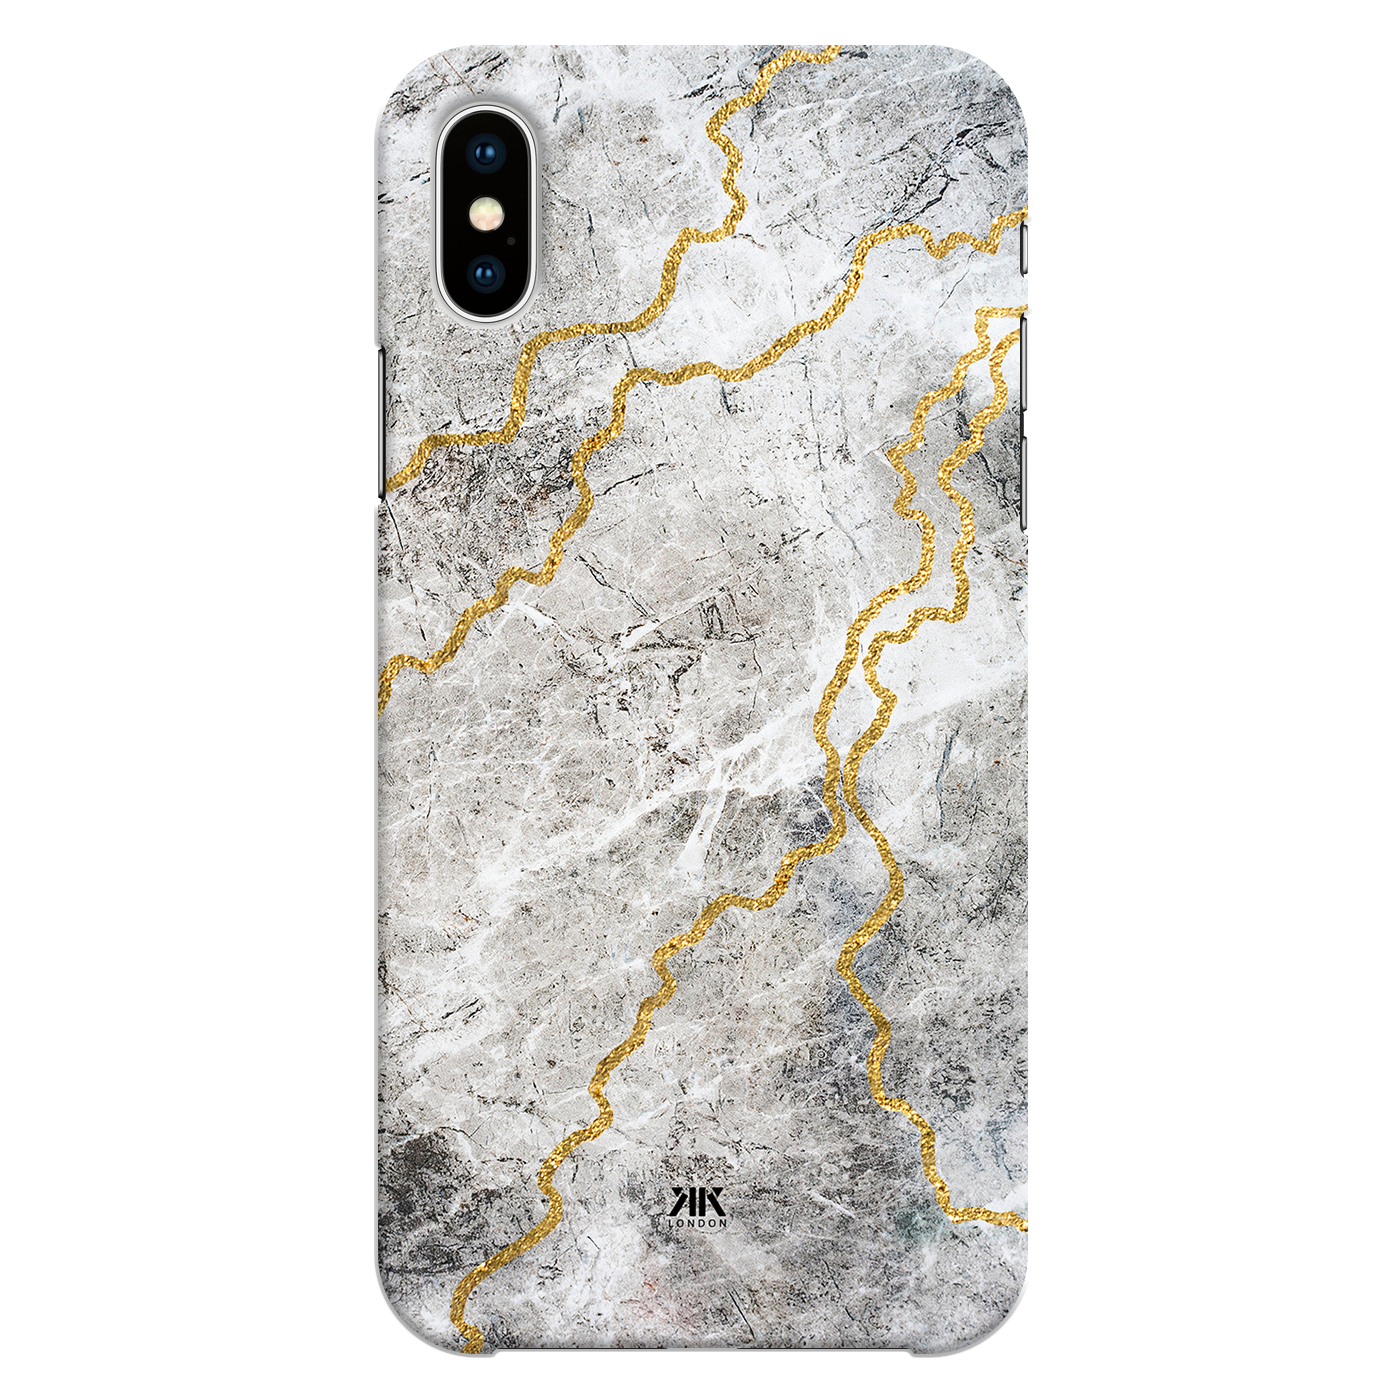 Grey Marble Gold Lines Phone Cases Covers By Kk Designs